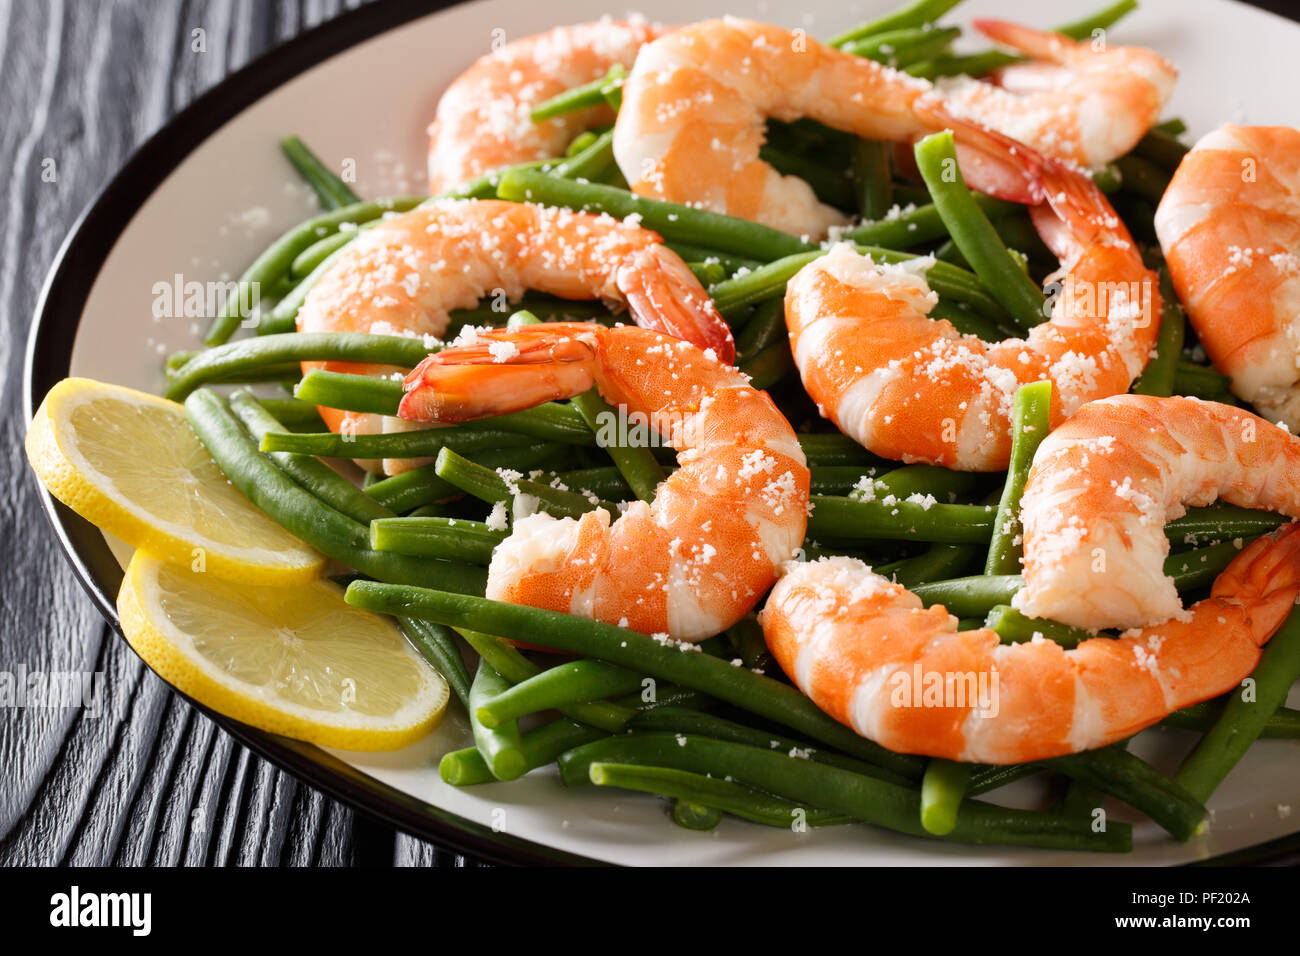 Stir fry prawns with green beans, cheese and lemon close-up on a plate on the table. horizontal - Stock Image